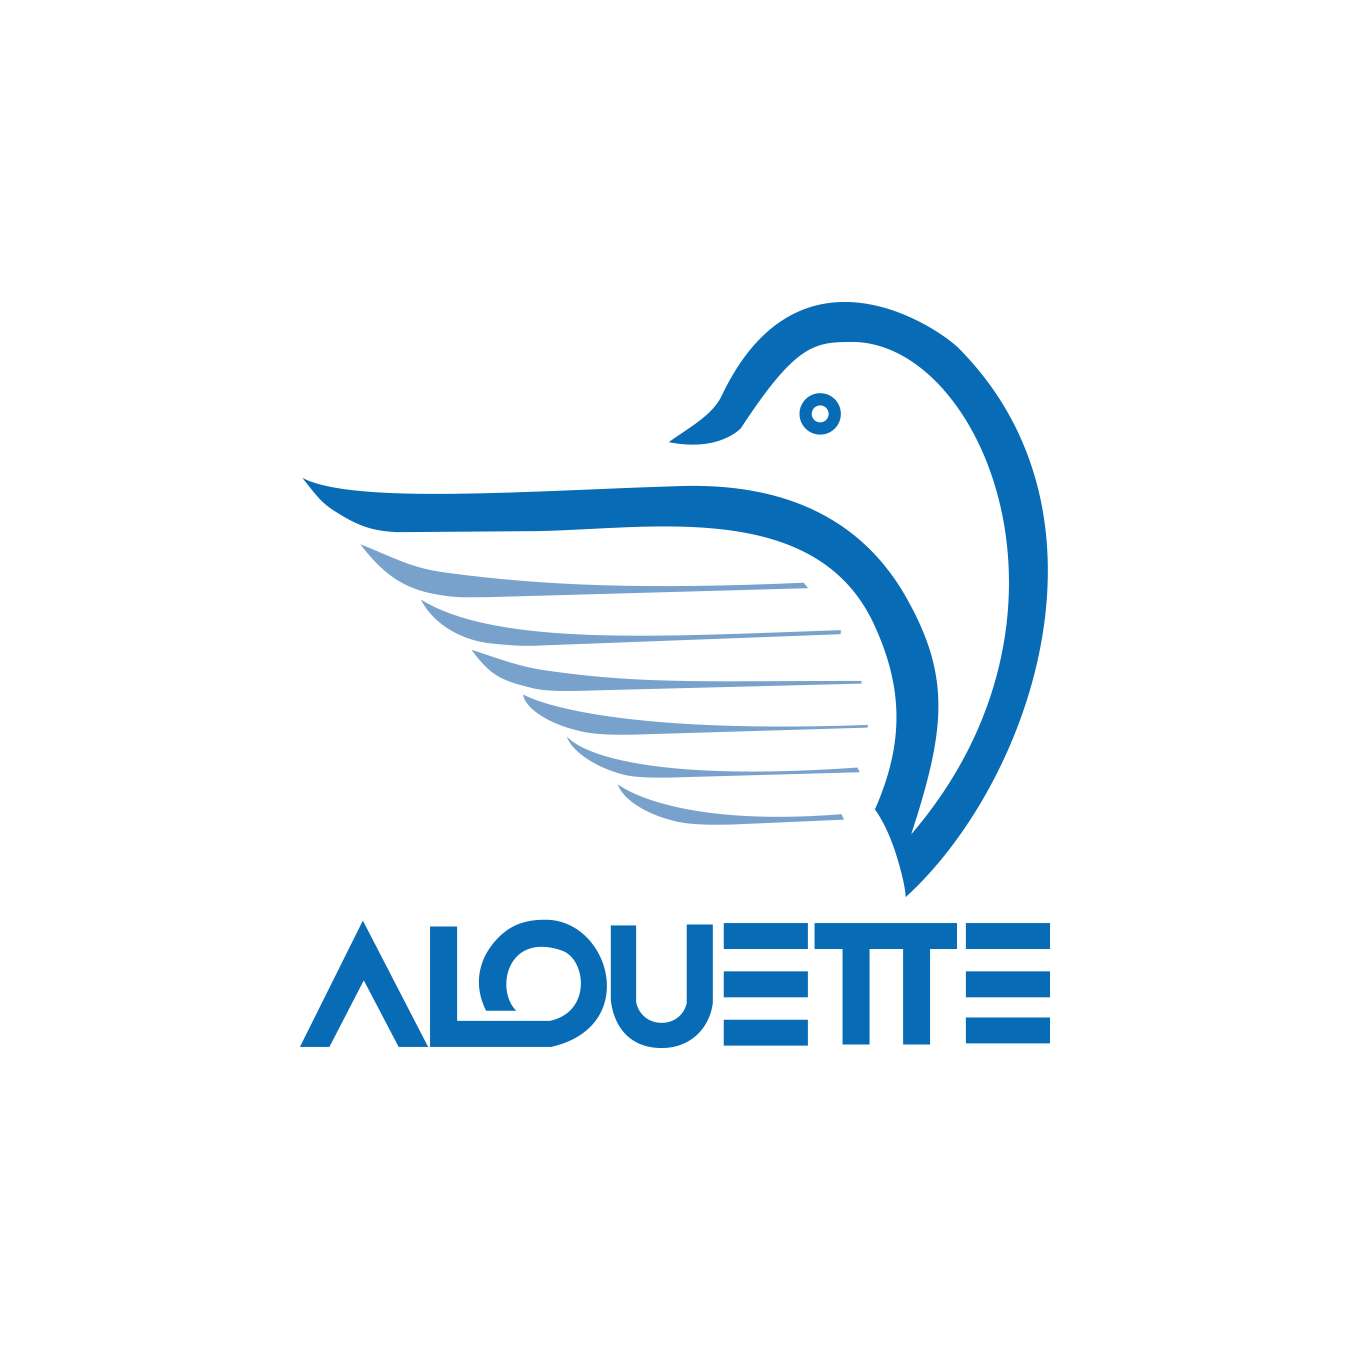 Alouette - Primary Aluminum from AMAG